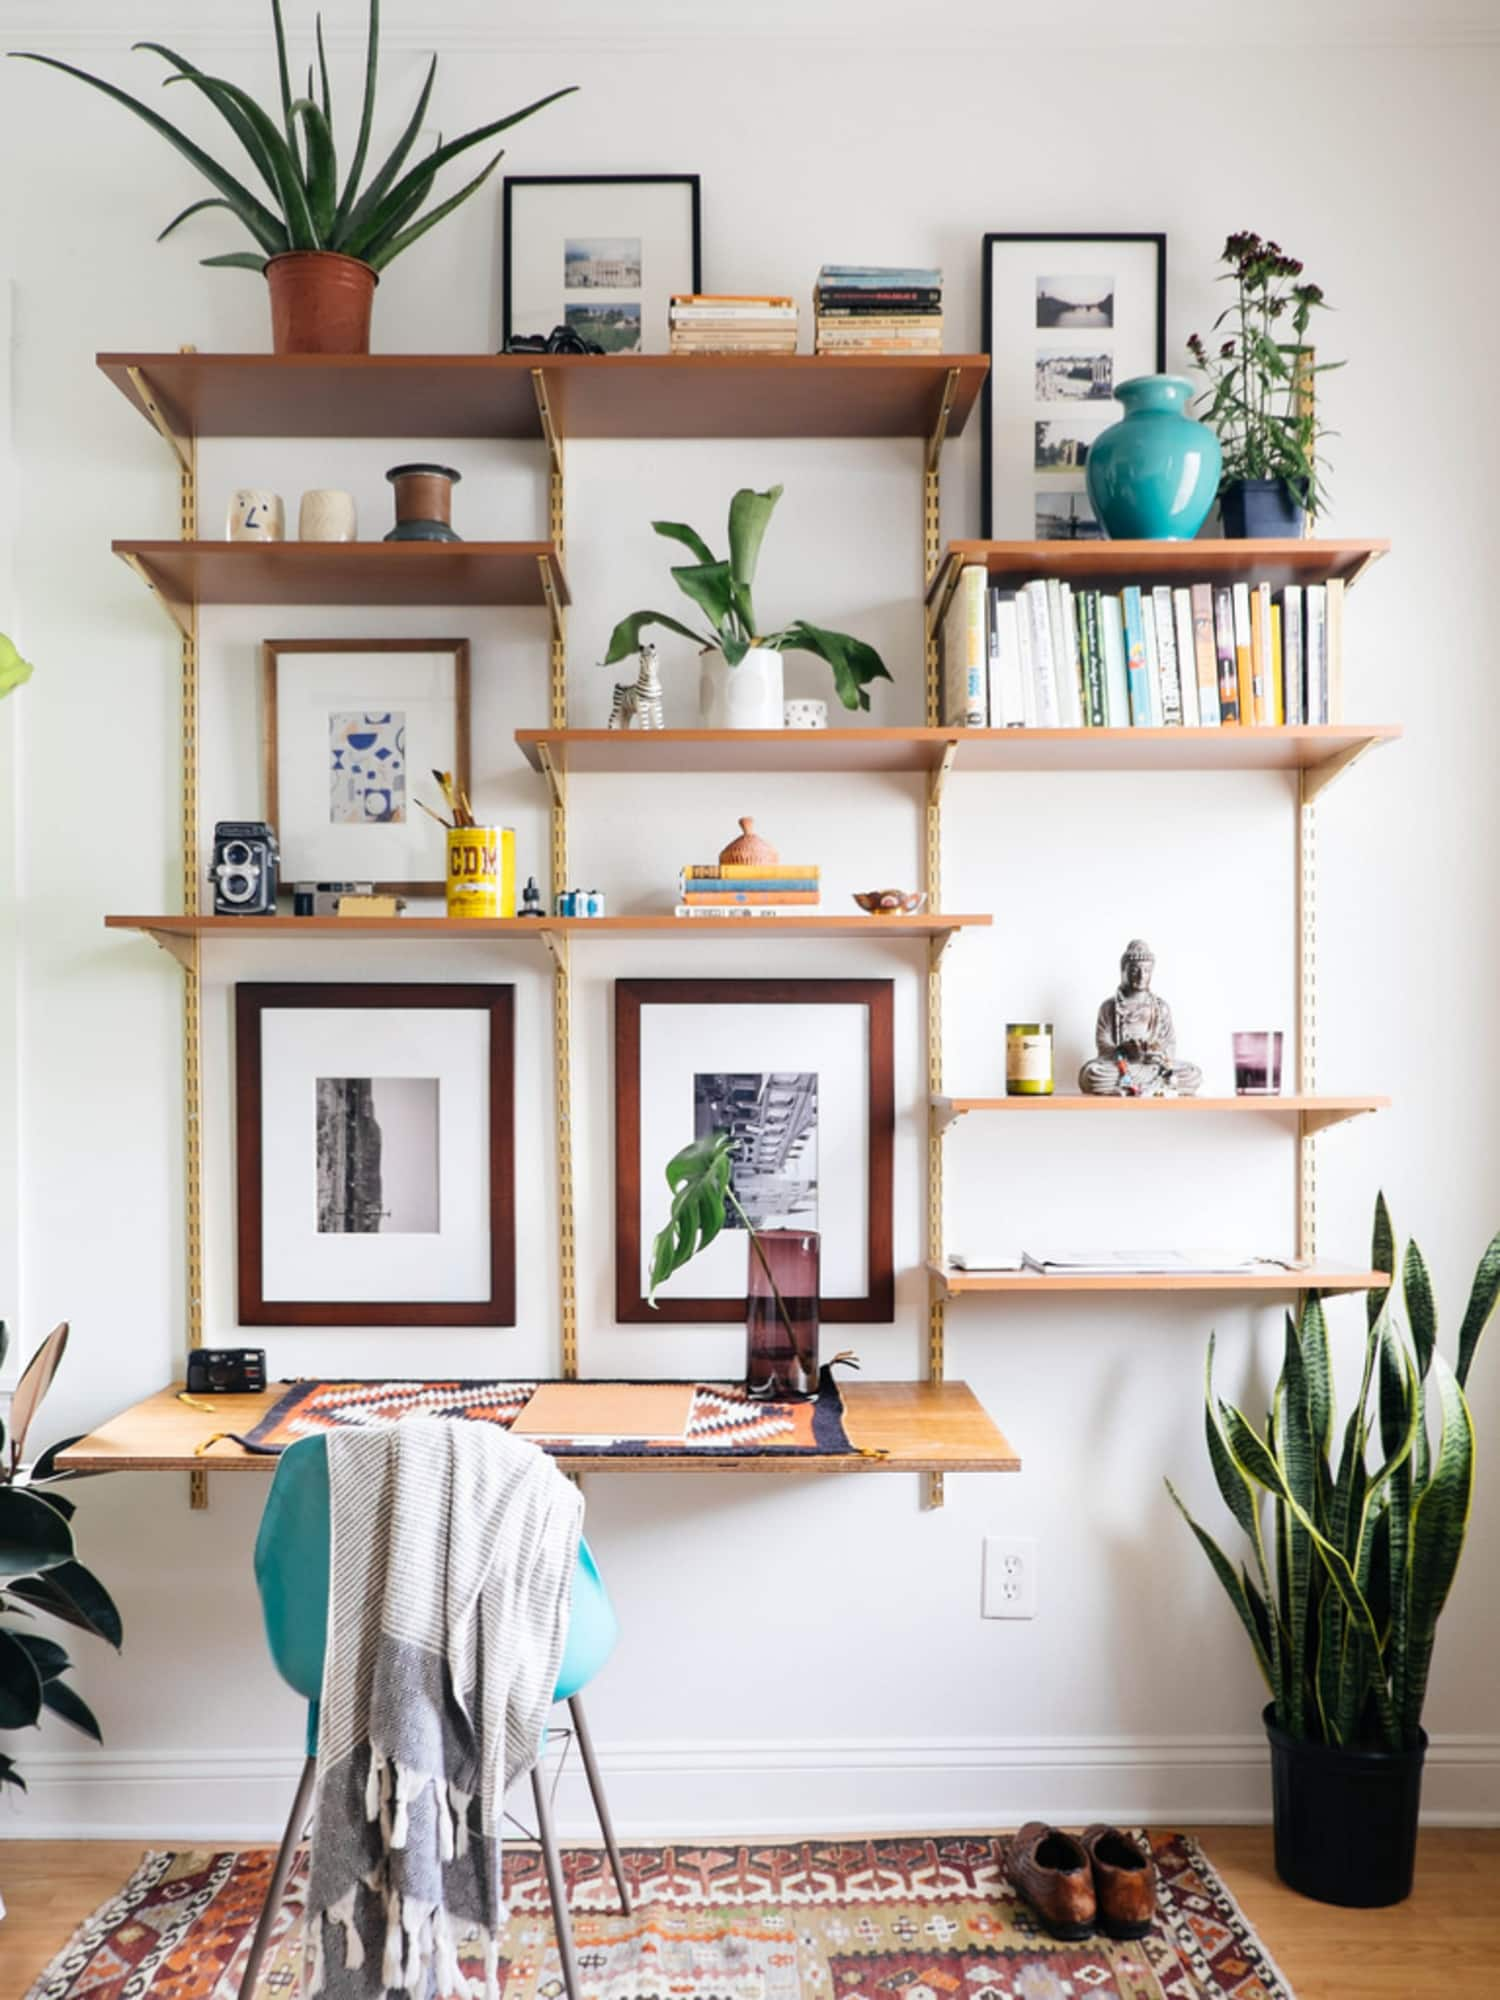 diy shelving system | Wall-Mounted Shelving Systems You Can DIY | Apartment Therapy